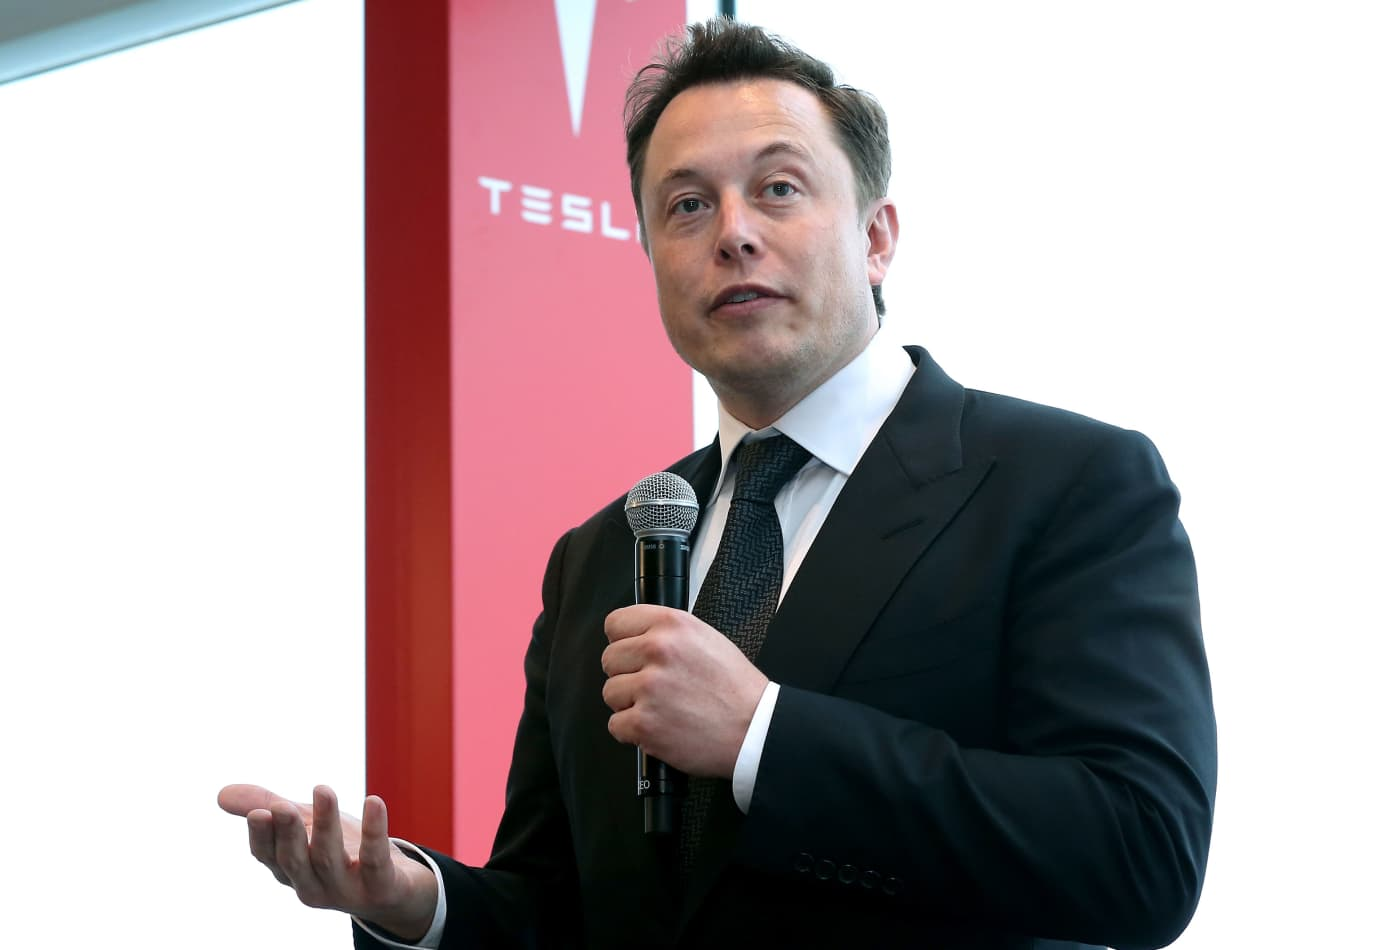 Morgan Stanley raises its 'bull case' on Tesla to $1,200